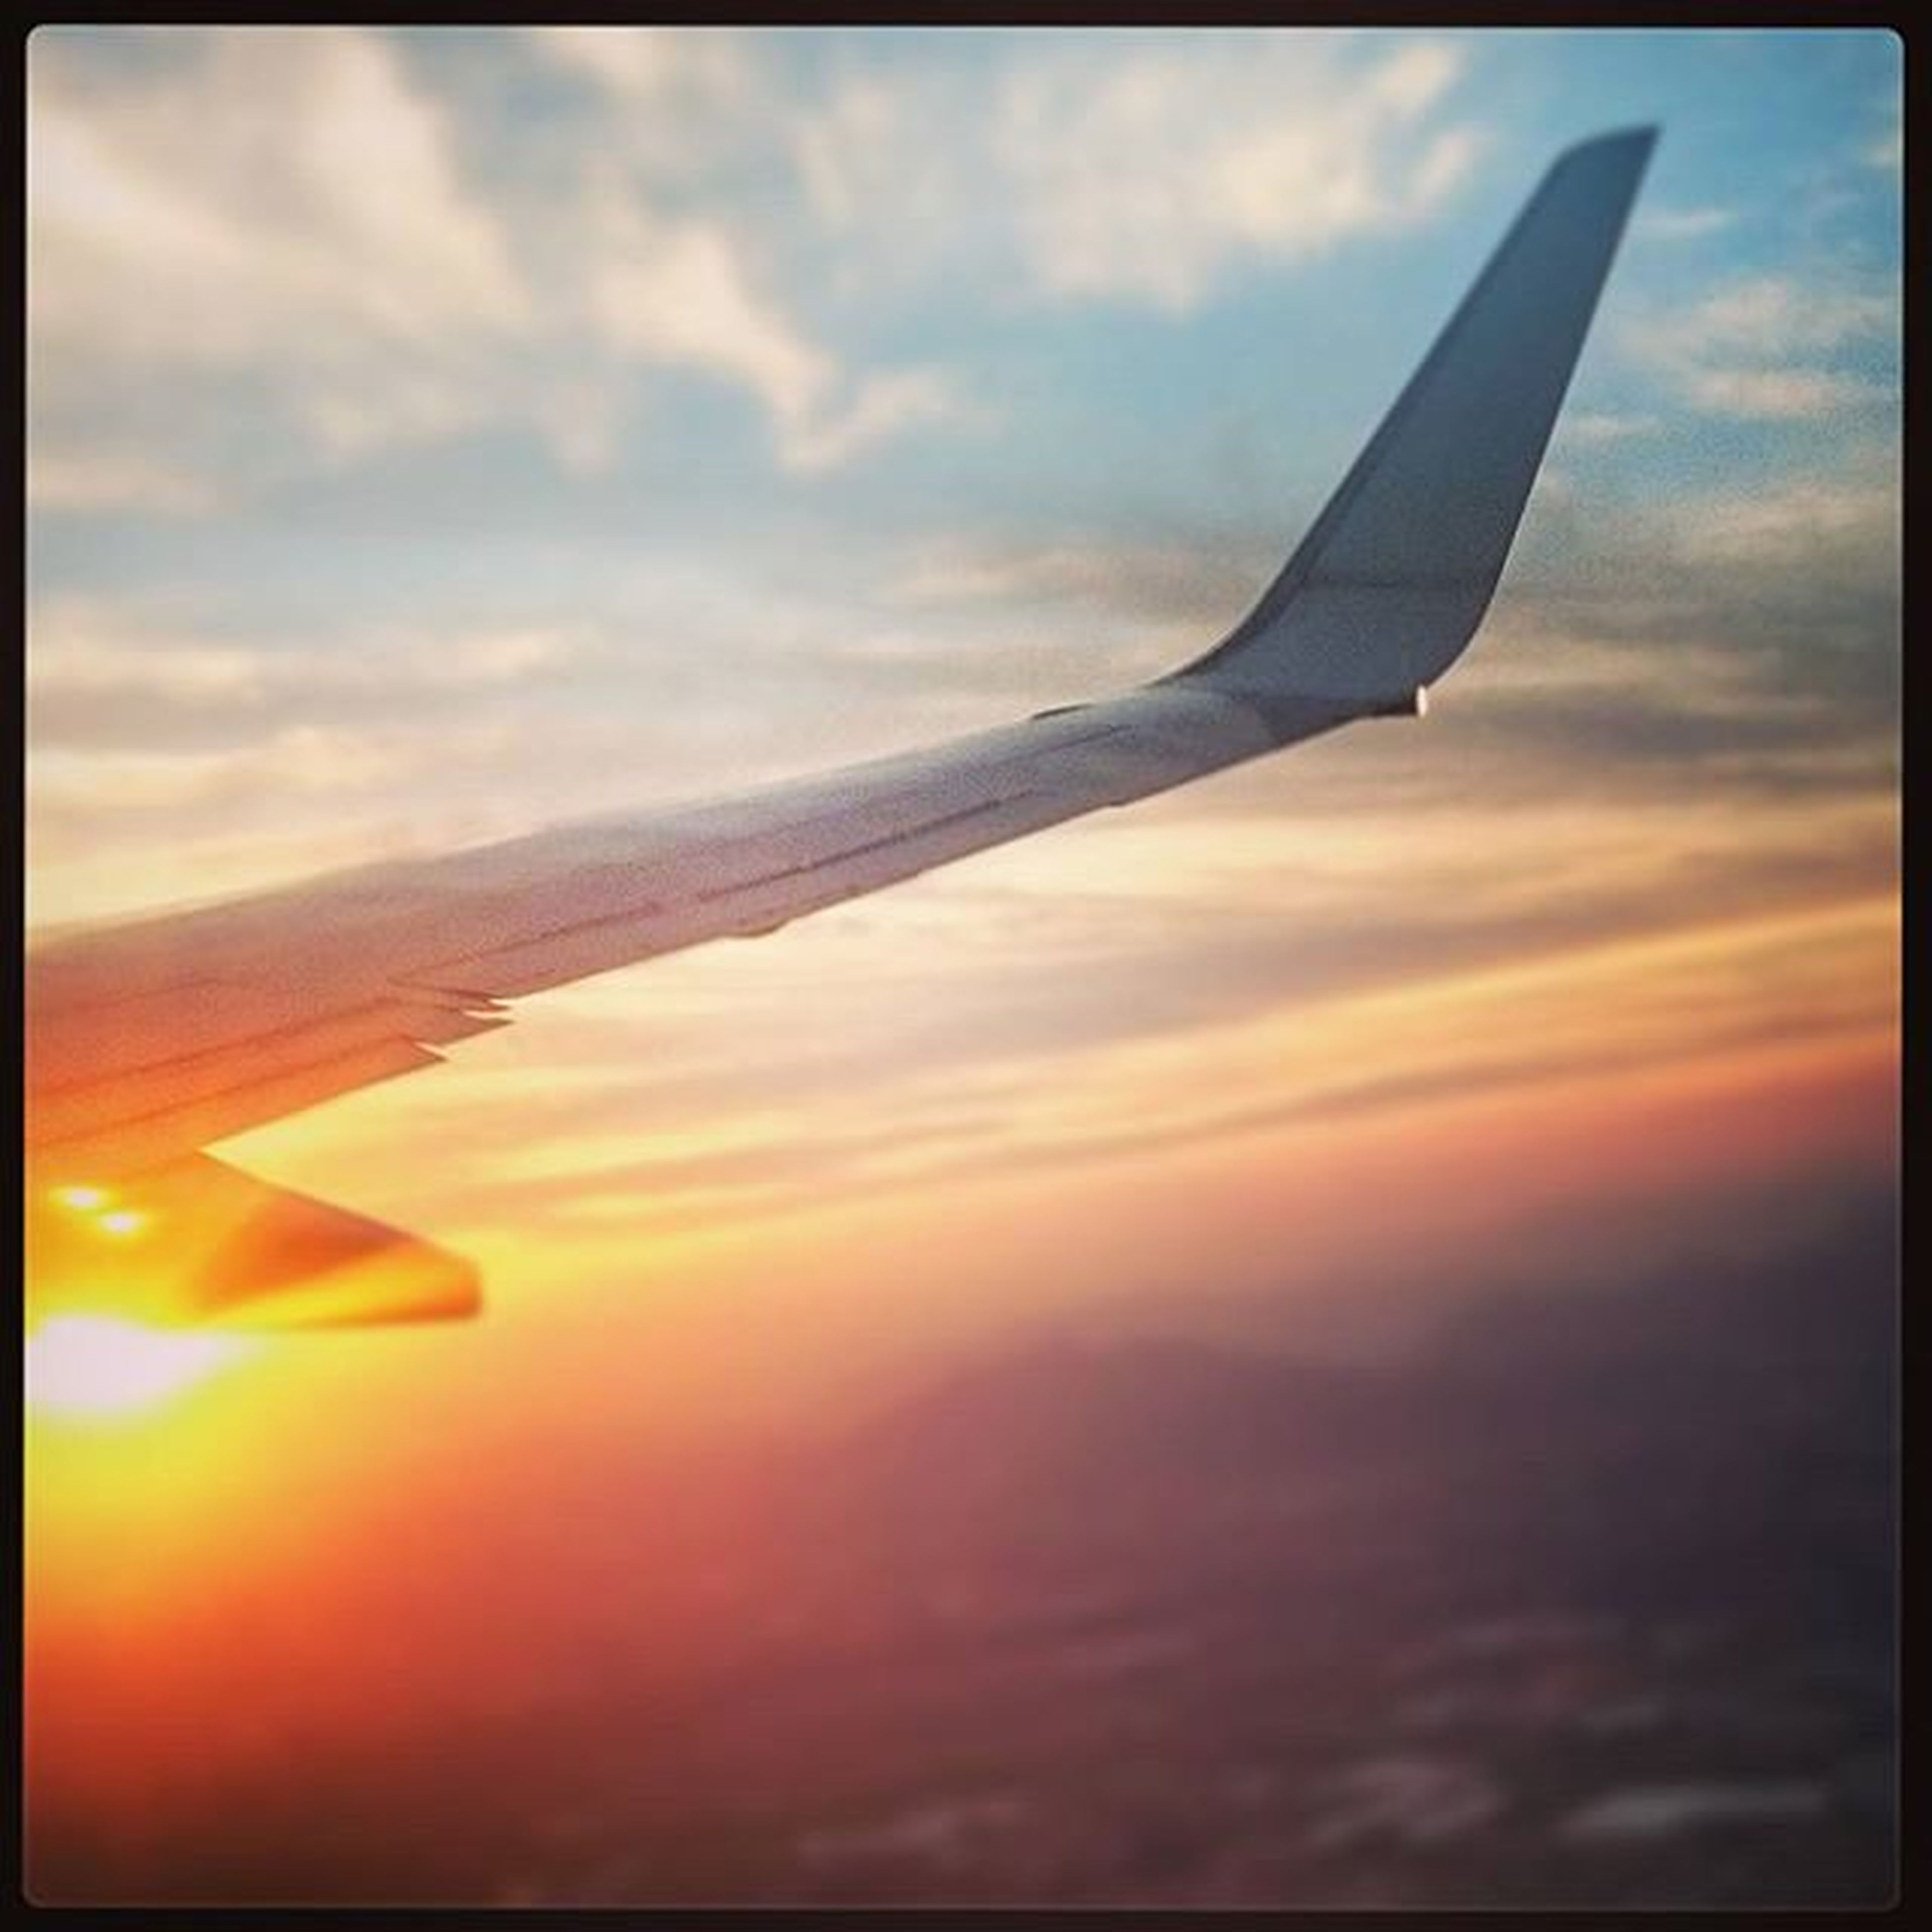 sunset, sky, transfer print, flying, cloud - sky, auto post production filter, beauty in nature, scenics, cloud, nature, airplane, tranquil scene, tranquility, orange color, cloudy, transportation, part of, cloudscape, aircraft wing, mid-air